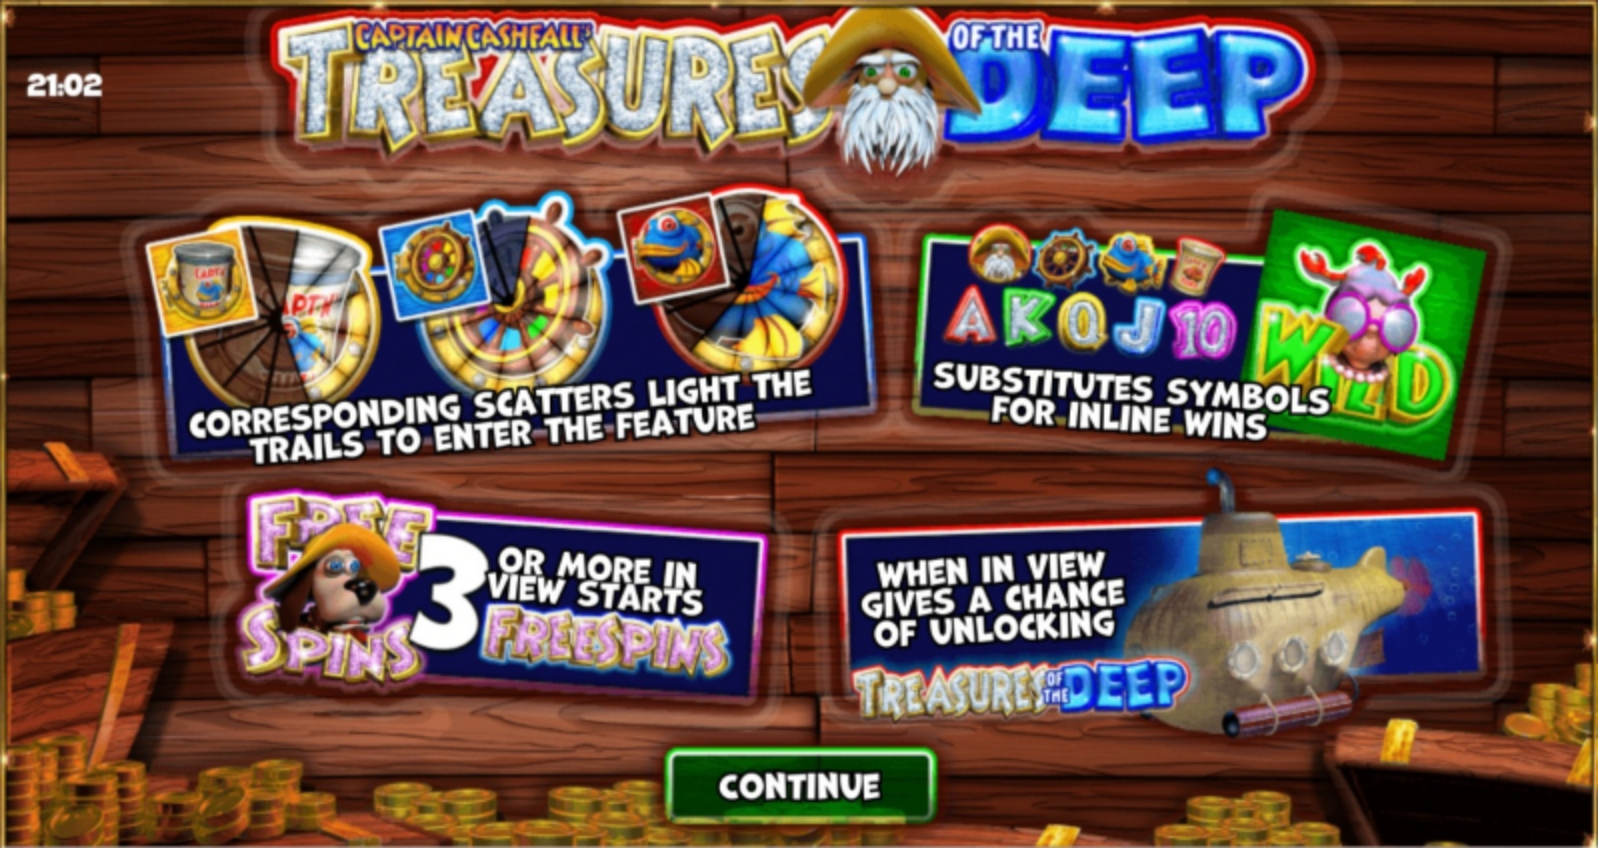 The Captain Cashfall's Treasures of the Deep Online Slot Demo Game by Storm Gaming